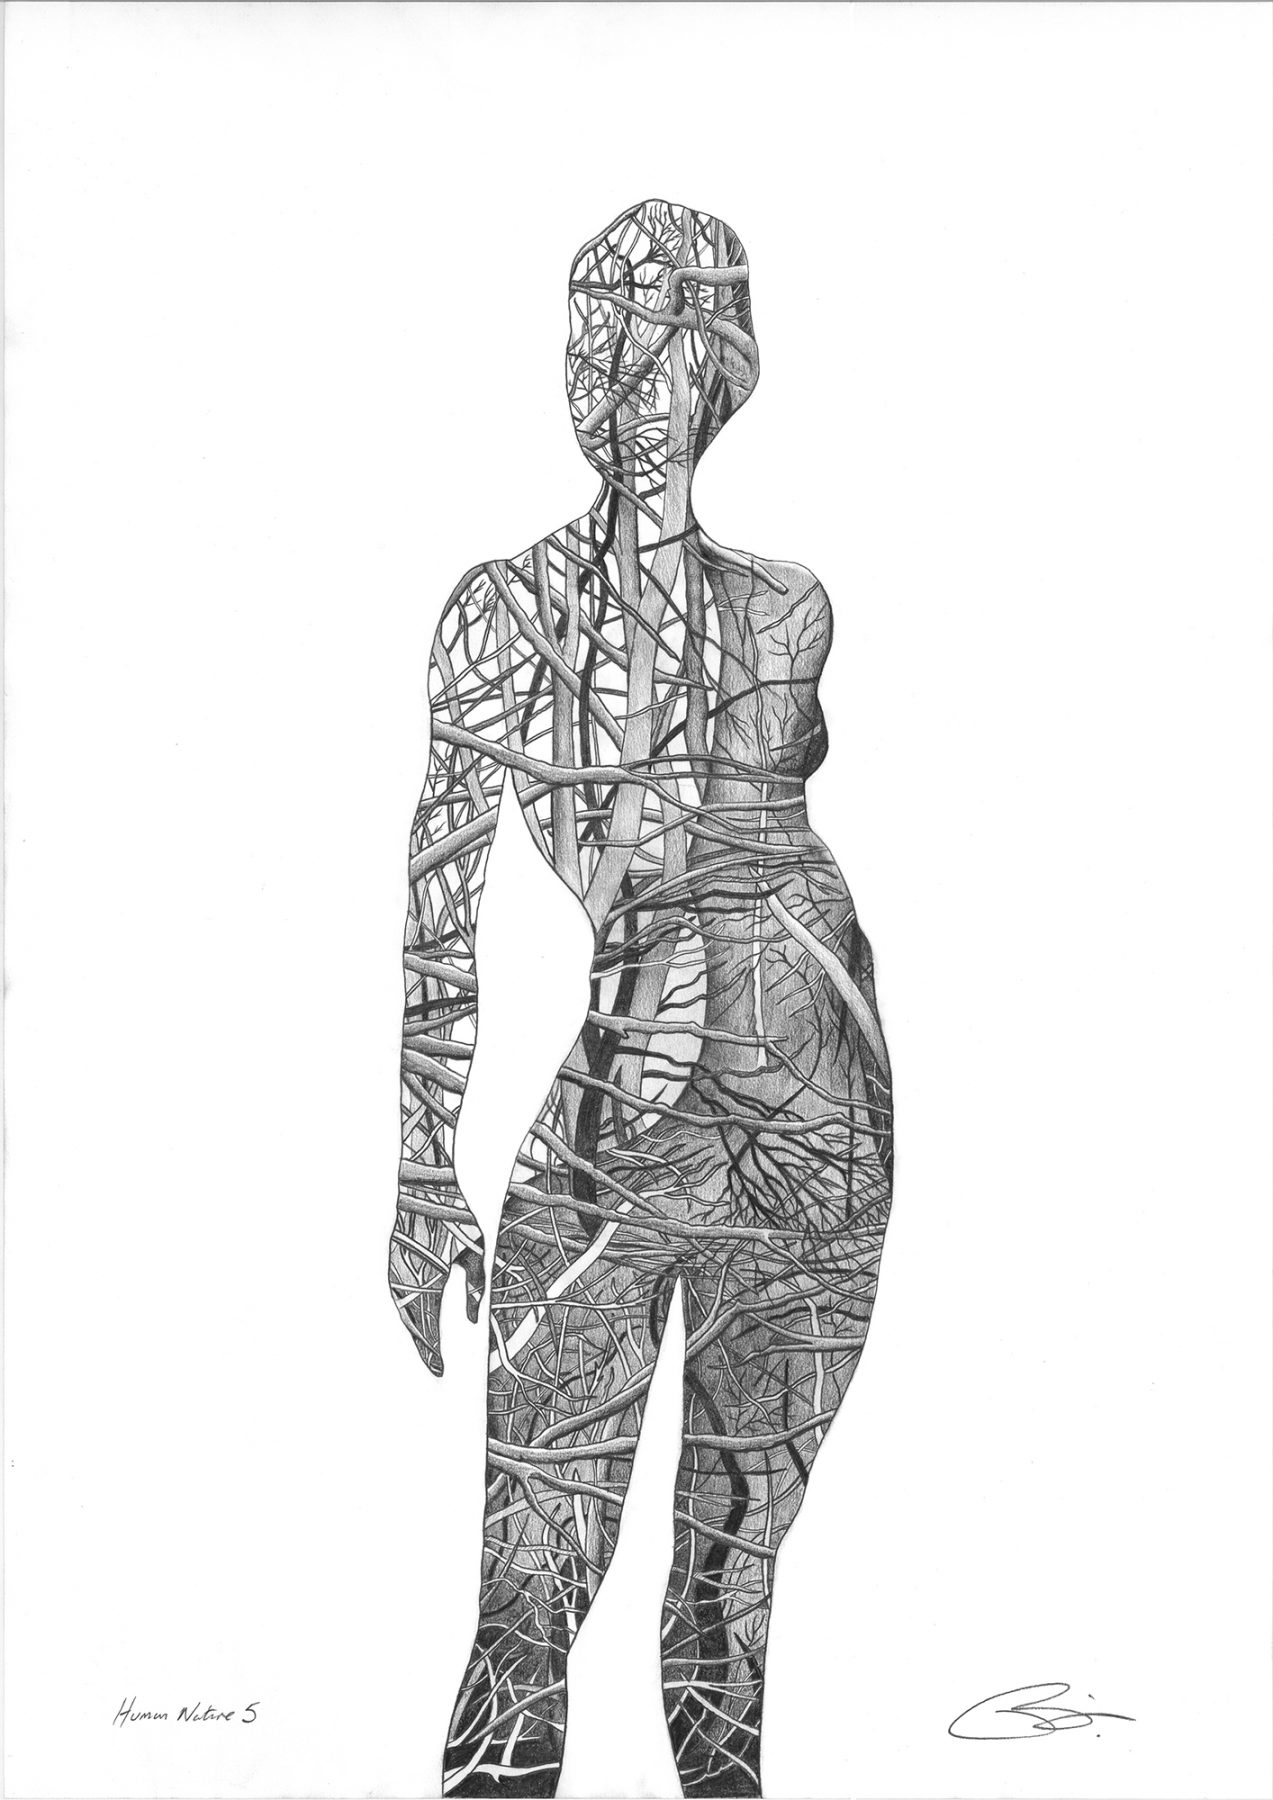 Human Nature 5 | Pencil on 200gsm paper | 42 x 59.4 cm